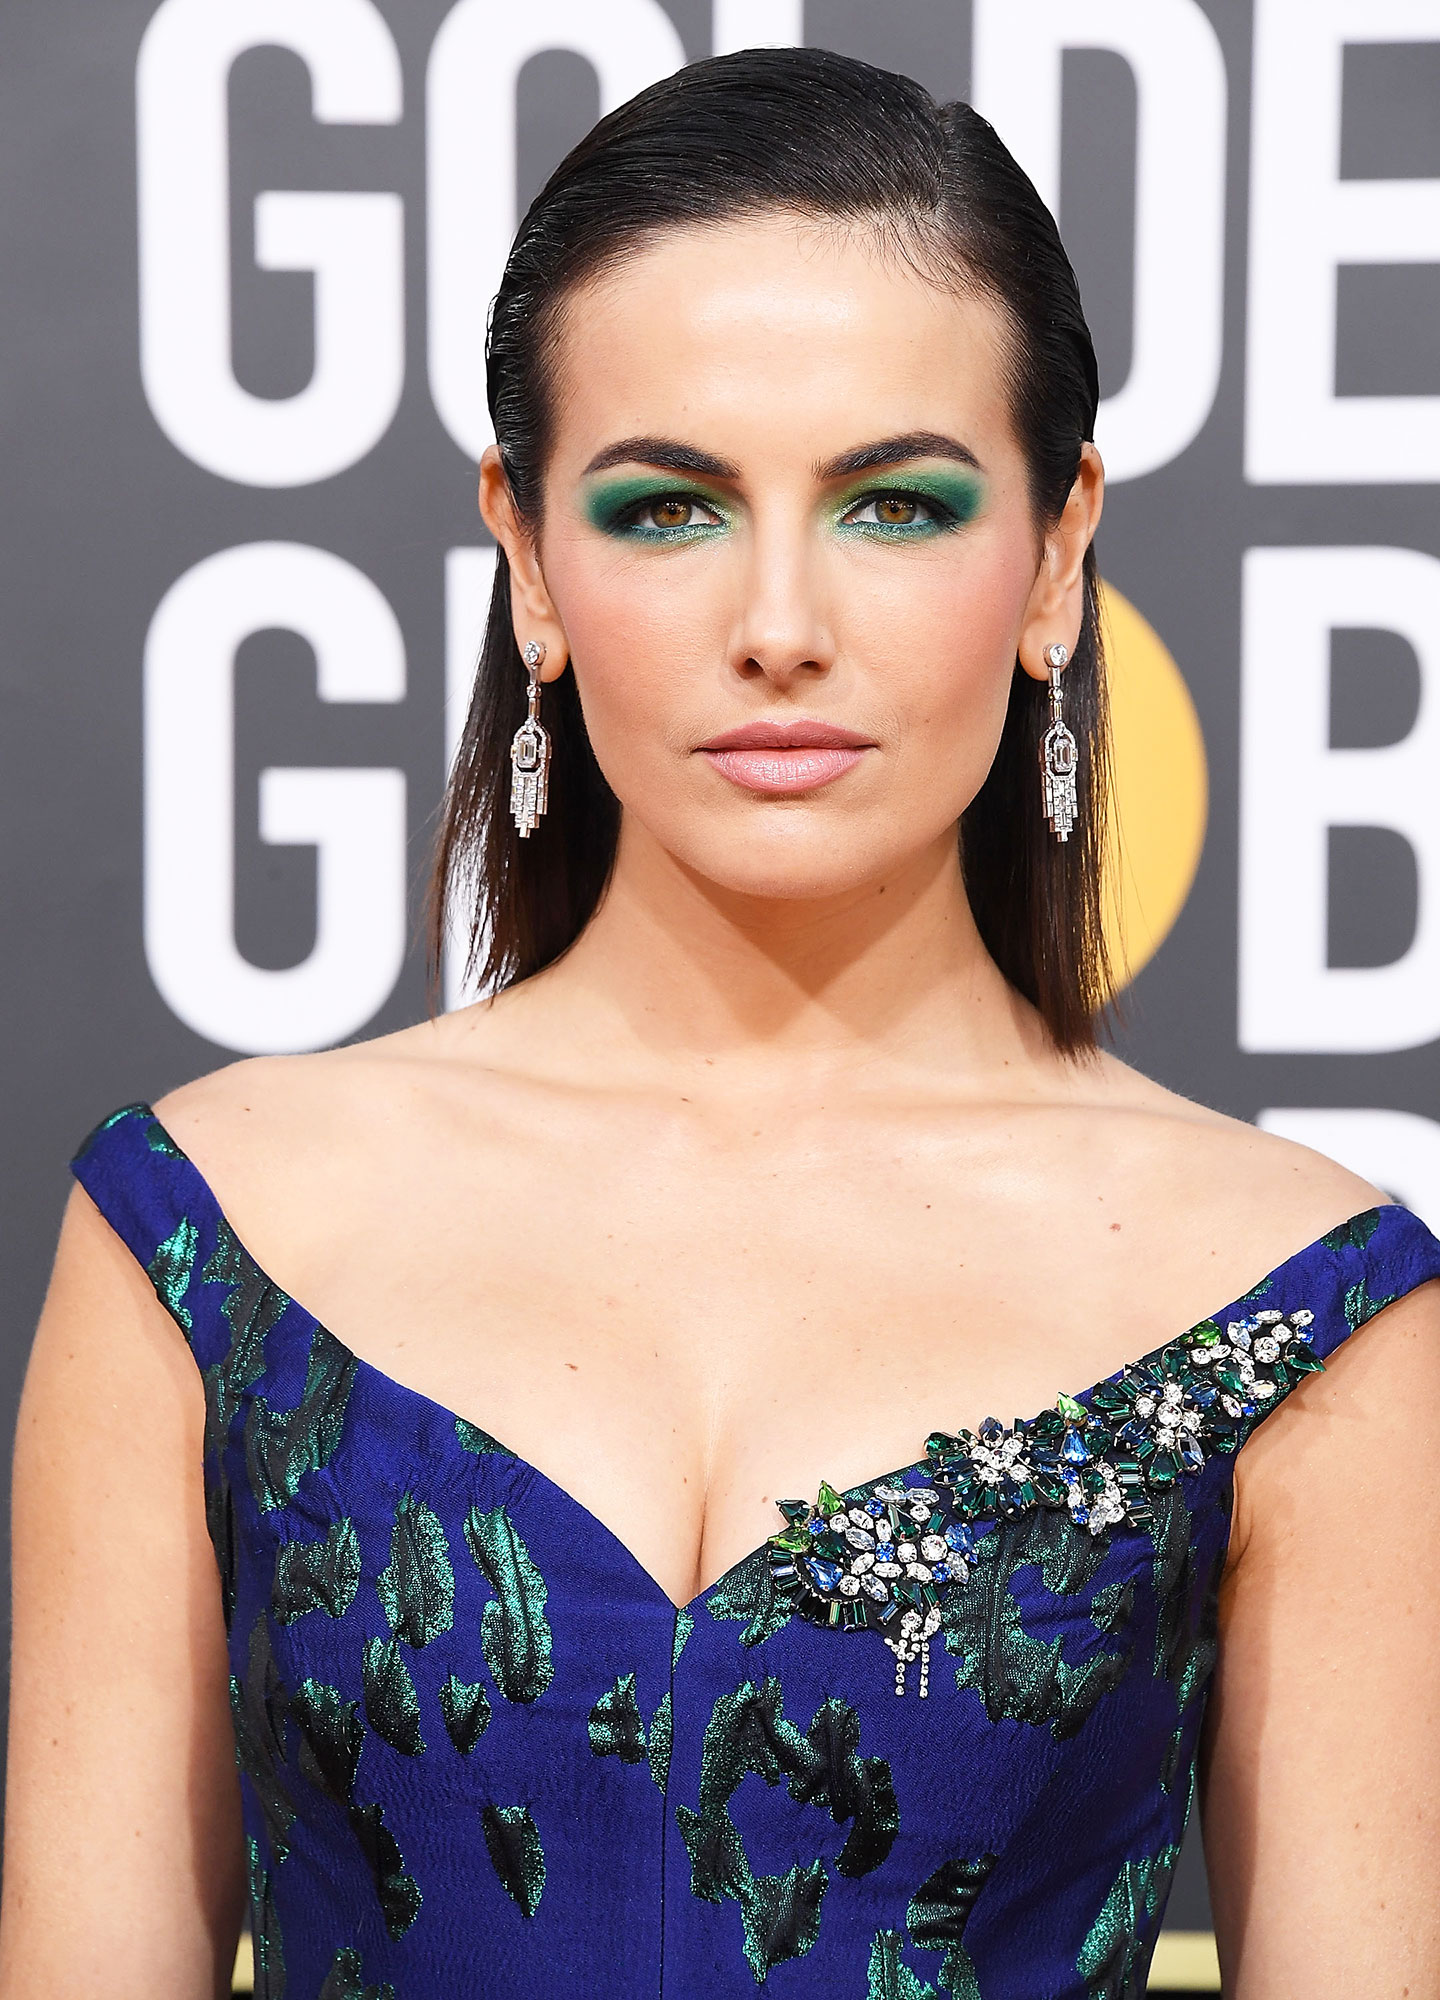 Camilla Belle Celebs Are Here With All the Coachella Beauty Inspo You Need - We're calling it: mermaid makeup is the new unicorn makeup, and artist Hung Vanngo created the actress' aquatic look at the Golden Globes with Chanel beauty. He used the teal and green shades in brand's Les 4 Ombres Multi-Effect Quadra Eyeshadow in 306 Splendeur et Audace all over the lid and added definition with the Stylo Yeux Waterproof Long-Lasting Eyeliner in 938 Mare-Chiaro (a shimmering mint) and 88 Noir Intense (a jet black).